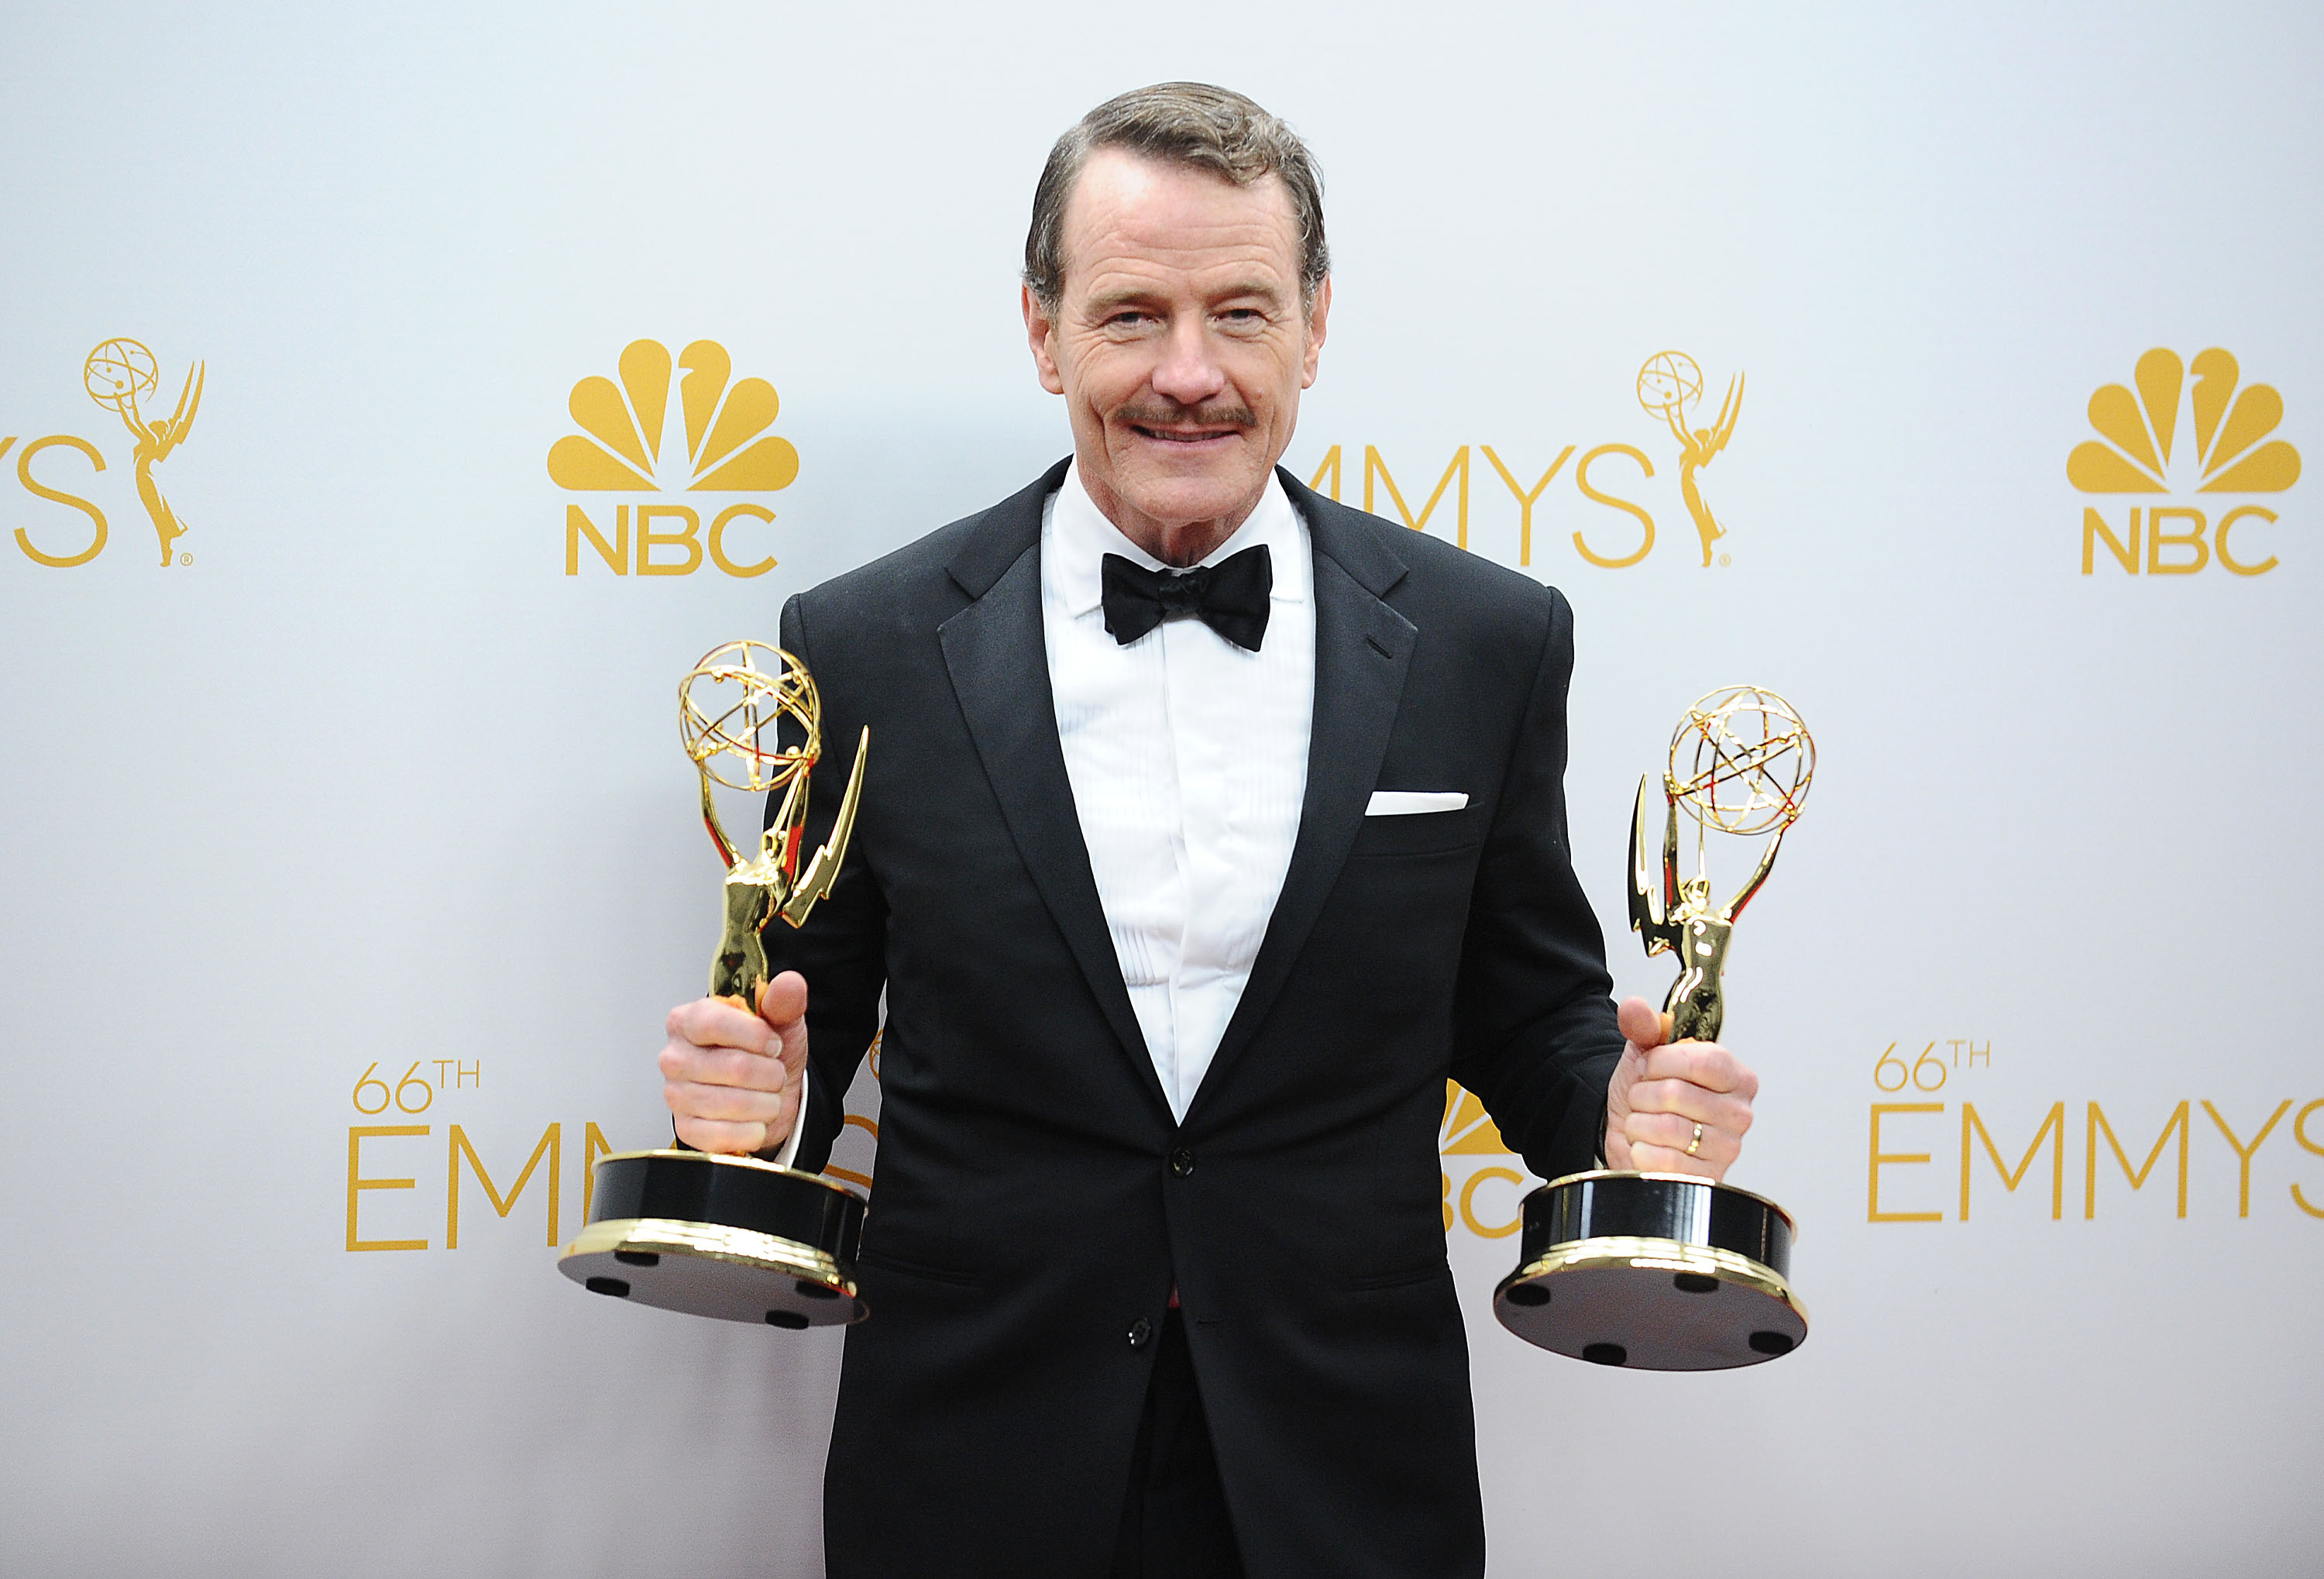 LOS ANGELES, CA - AUGUST 25:  Actor Bryan Cranston poses in the press room at the 66th annual Primetime Emmy Awards at Nokia